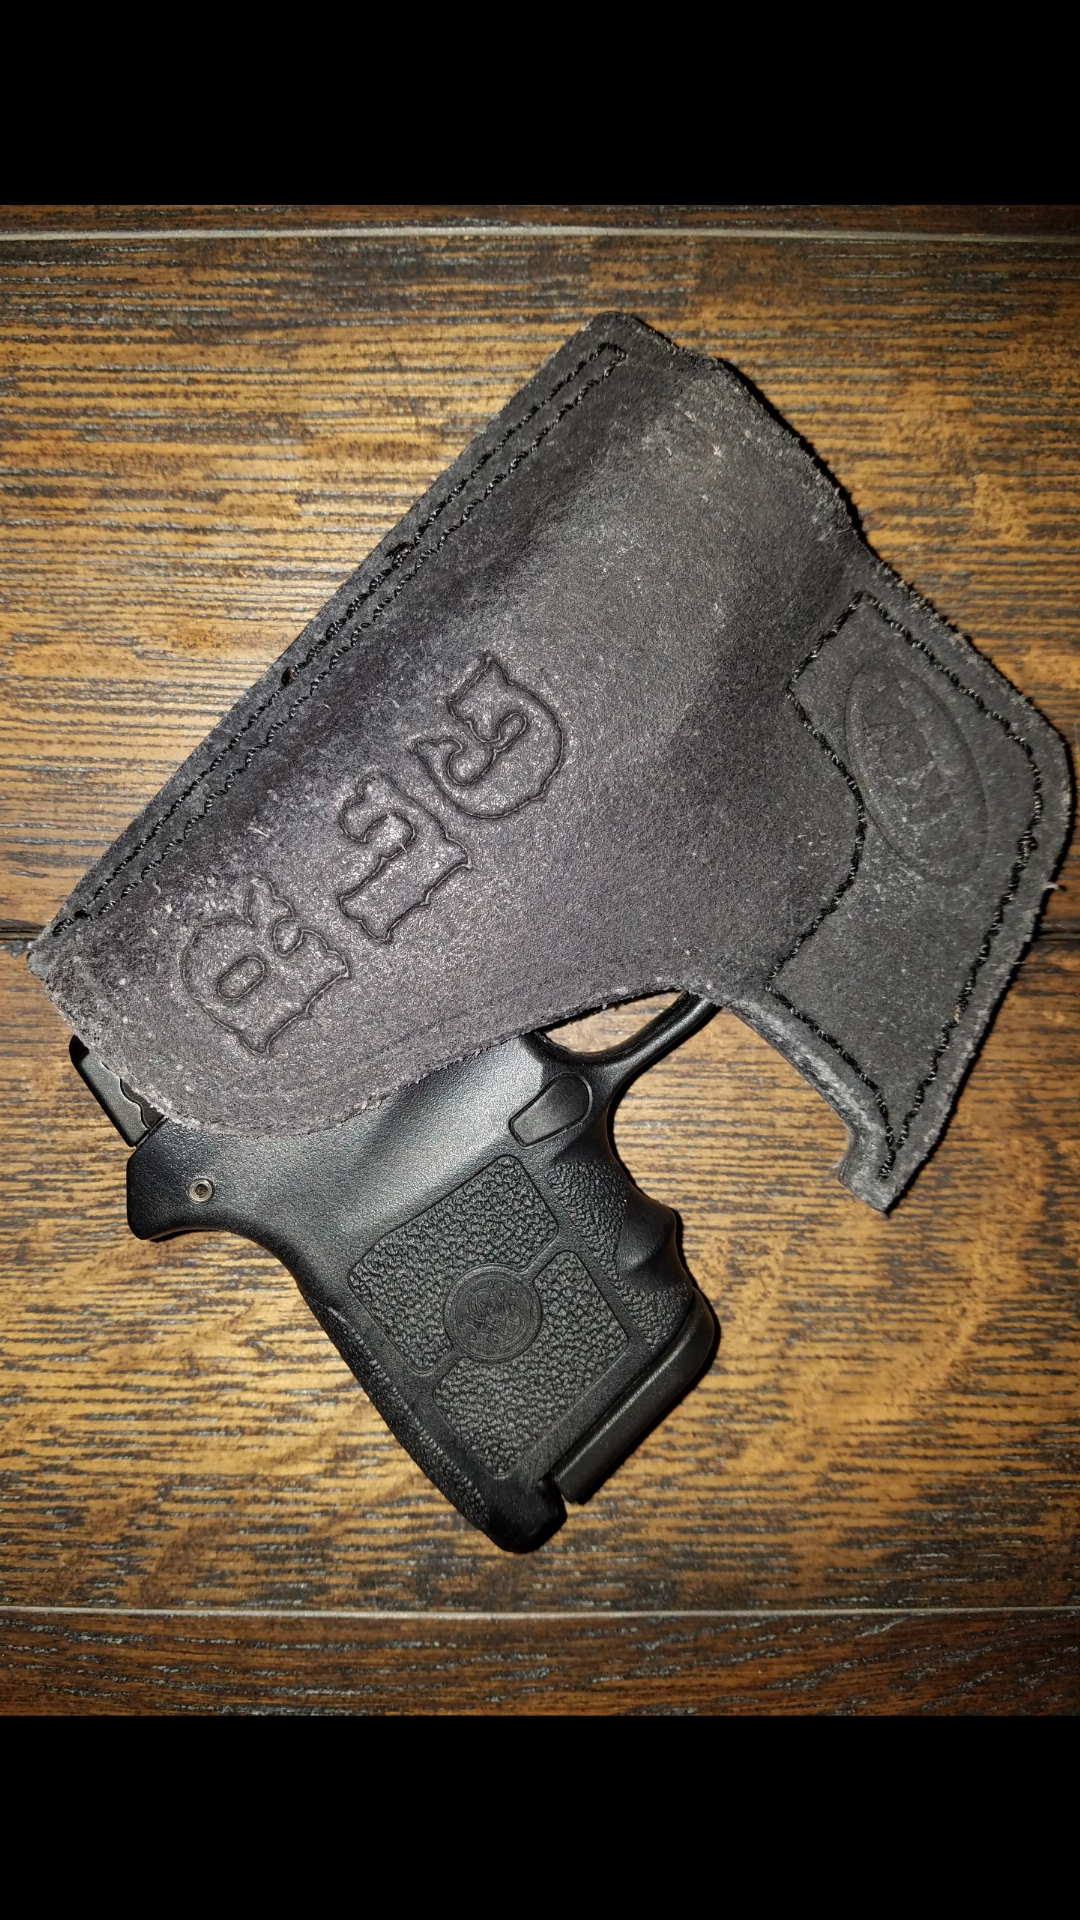 Considering a pocket 380......What do you carry and why?-screenshot_20190808-114907_gallery_1570674582360.jpg